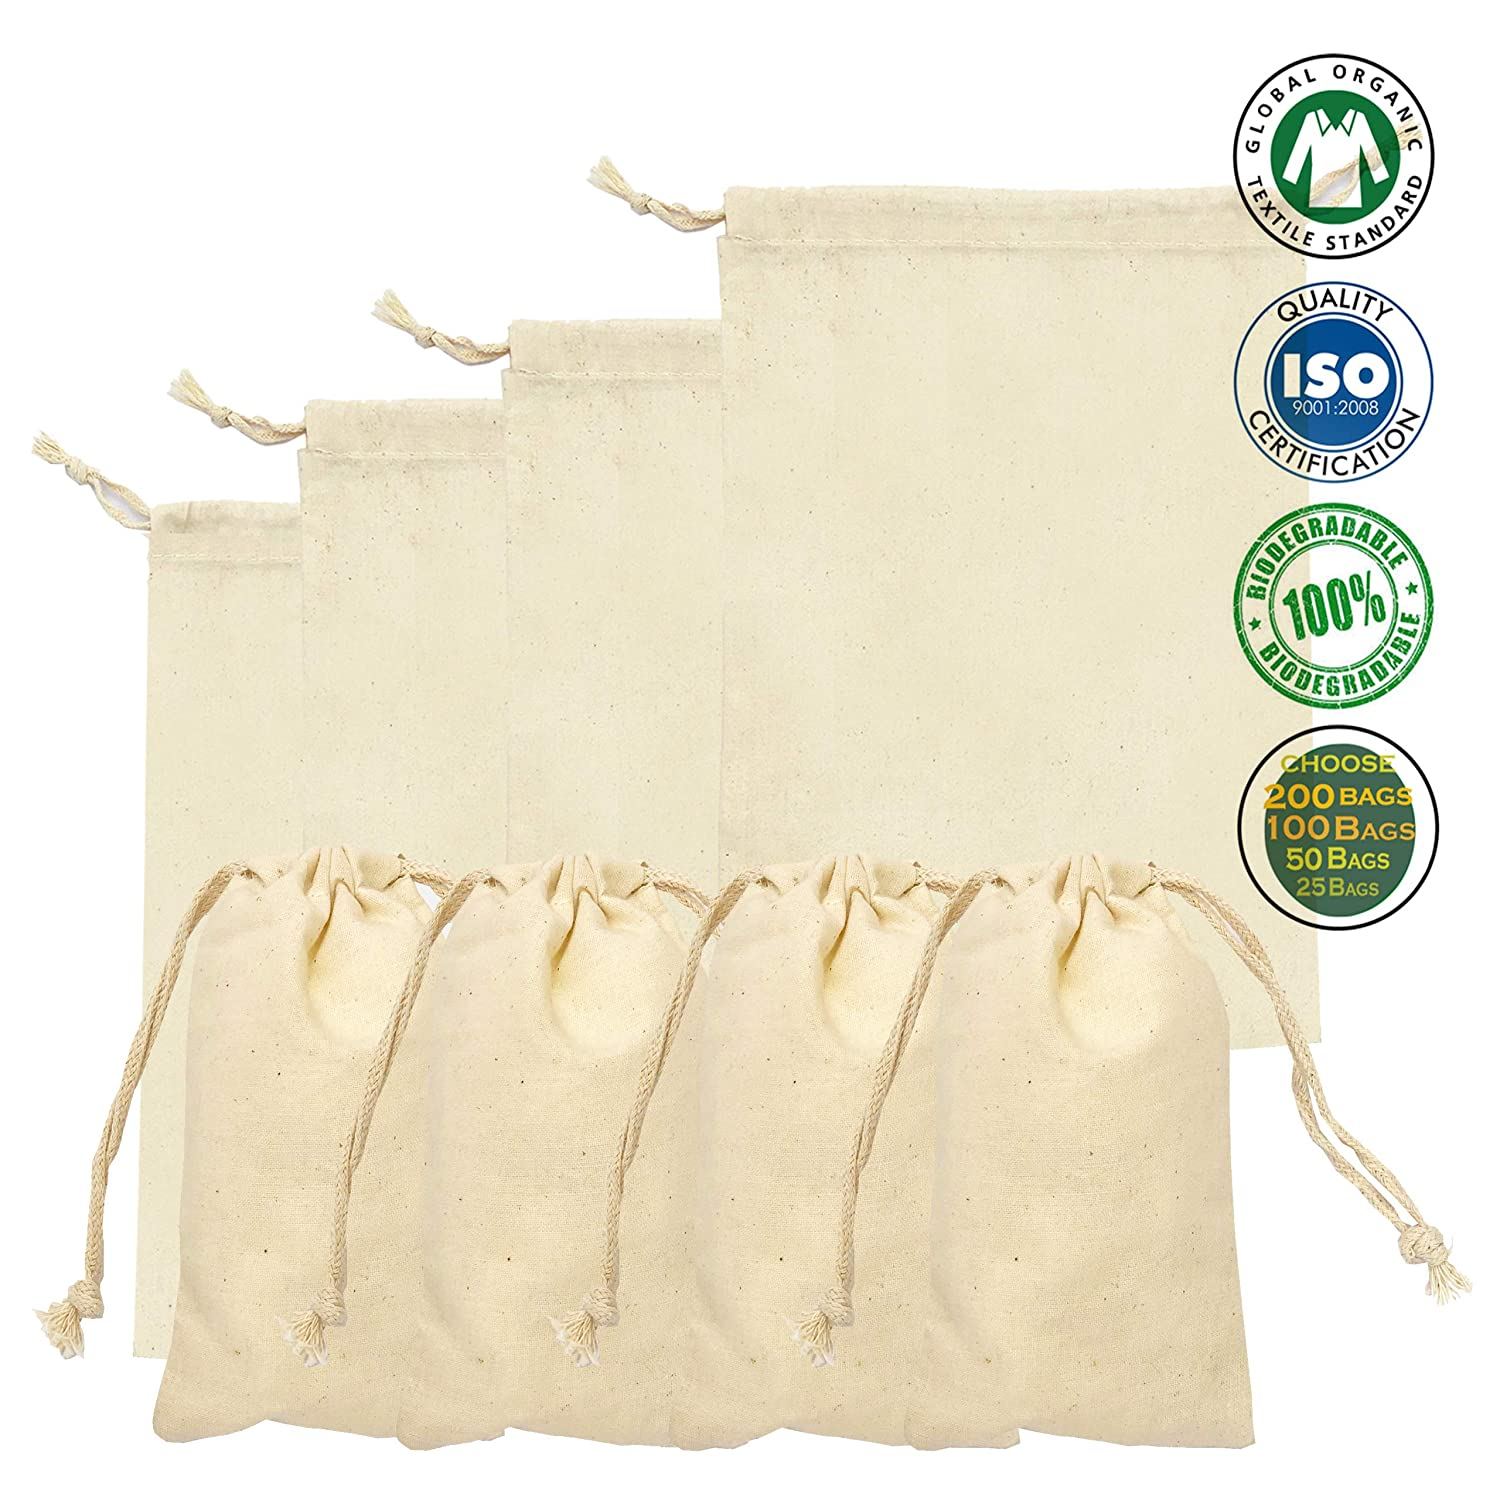 3c4d46f9c93 Amazon.com: Cotton Double Drawstring Muslin Bag. 100% Organic Cotton. Pack  of 100 (3 x 5 Inches): Kitchen & Dining